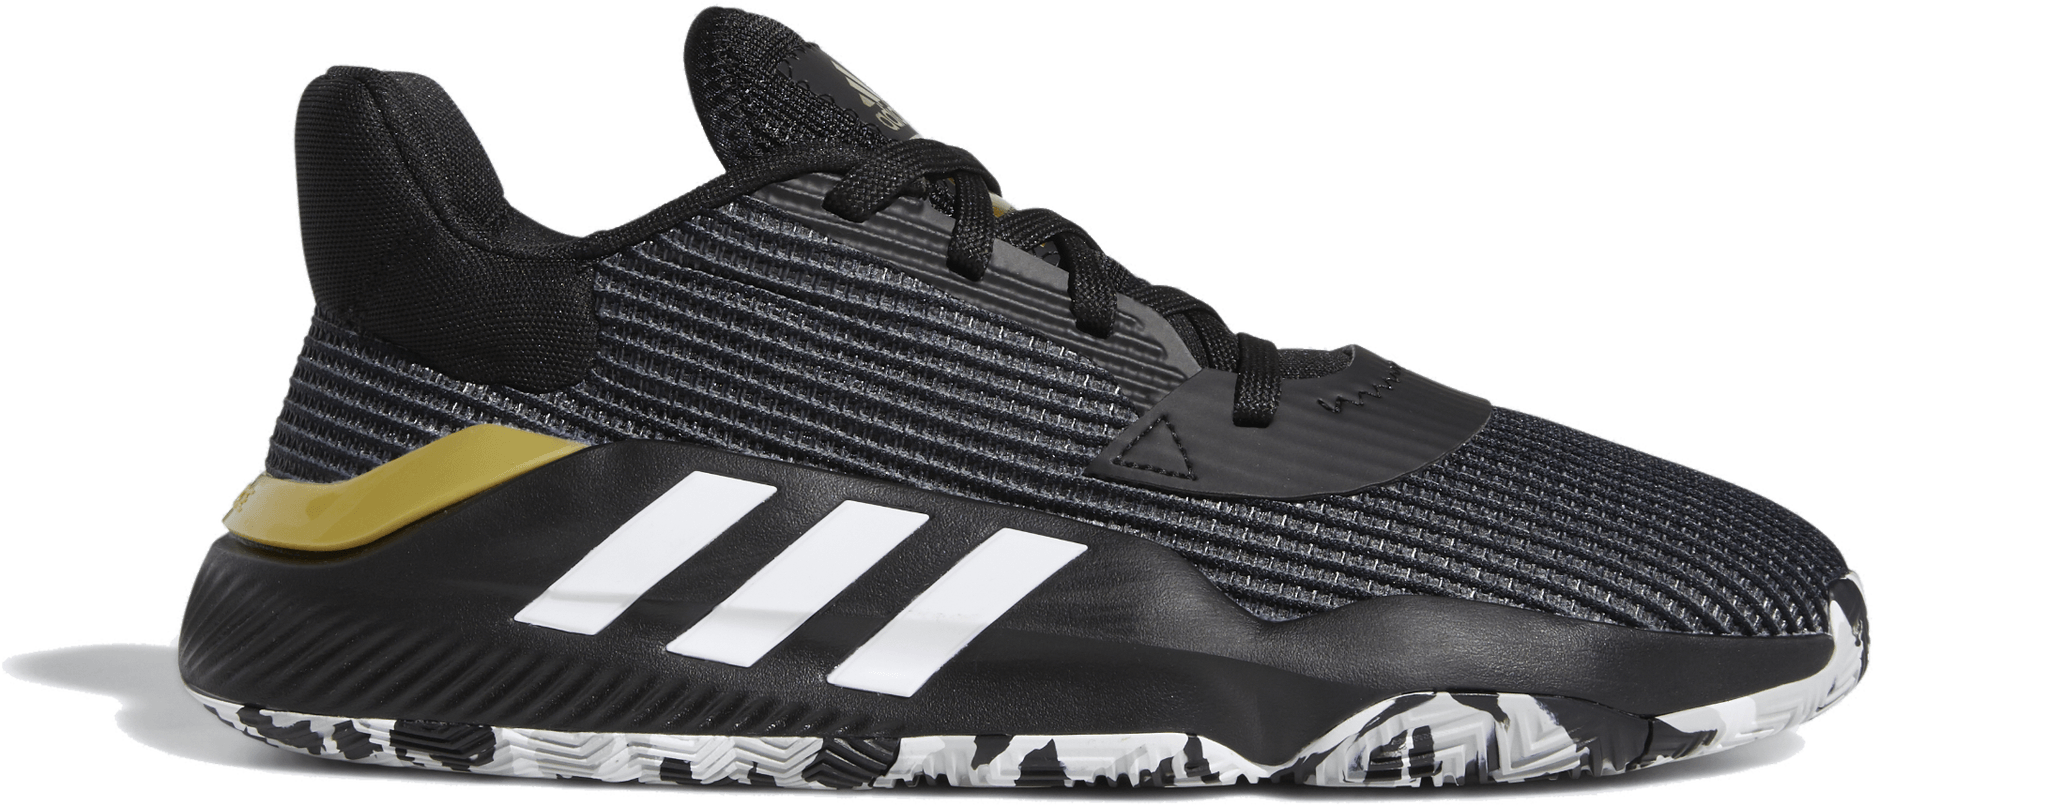 Adidas Pro Bounce 2019 Low Performance